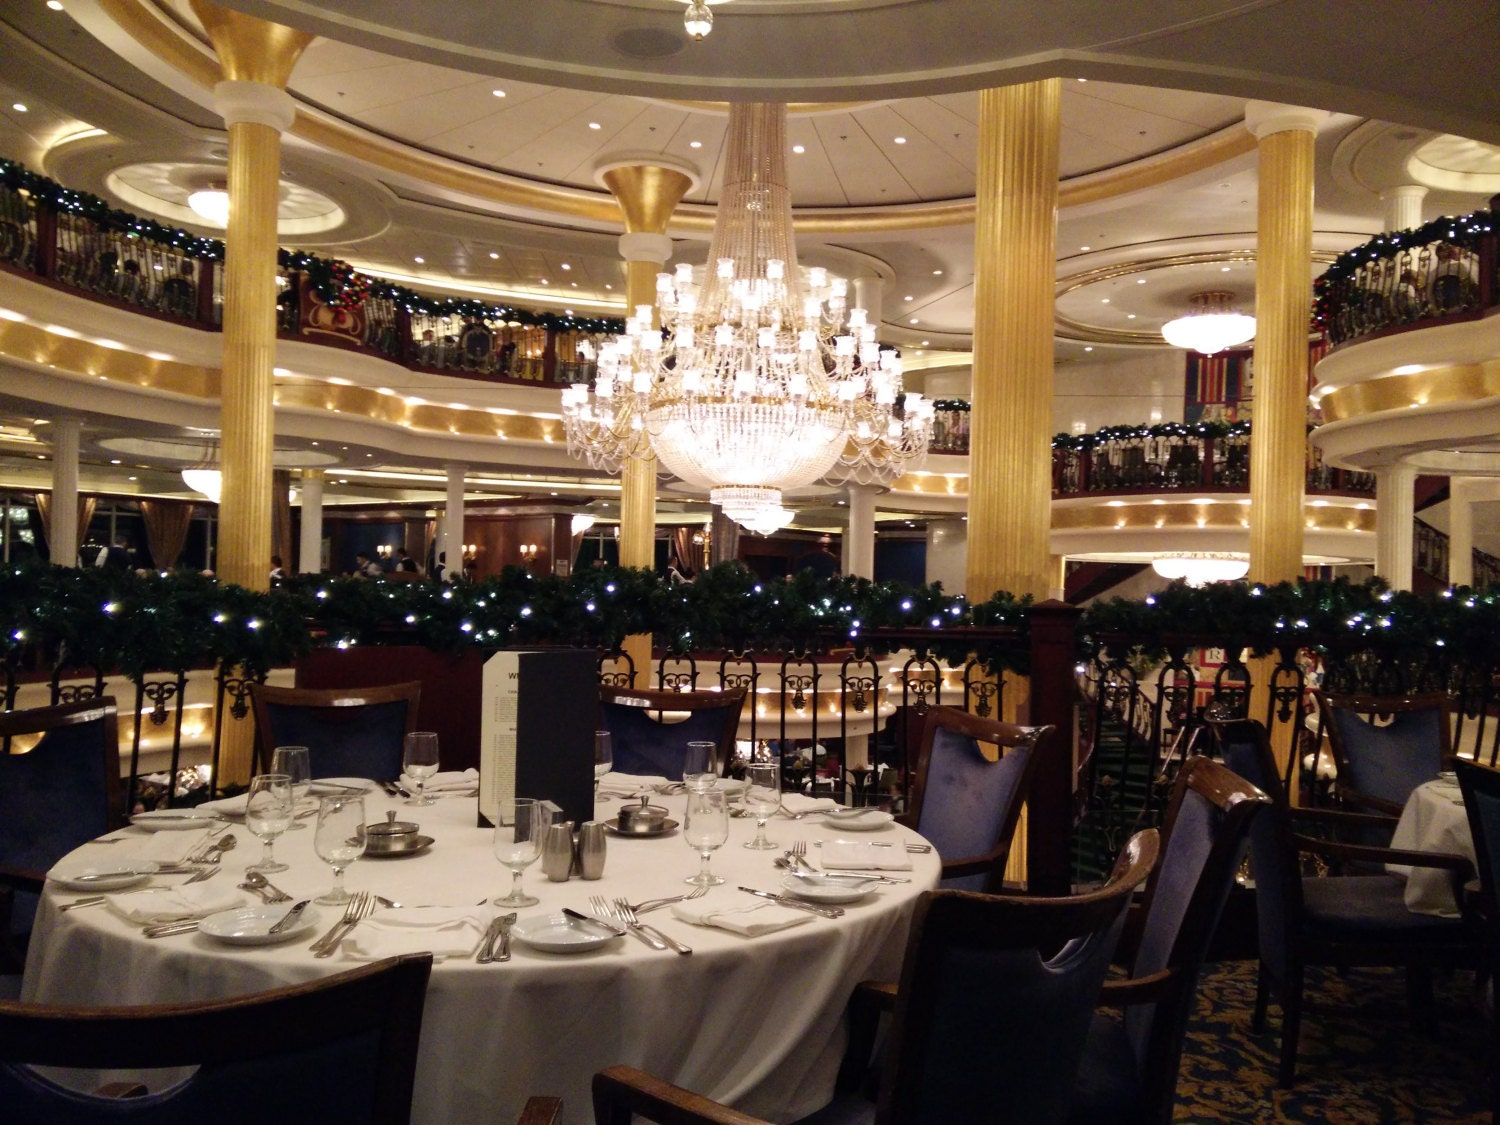 Royal Caribbean Indy - Dining Room